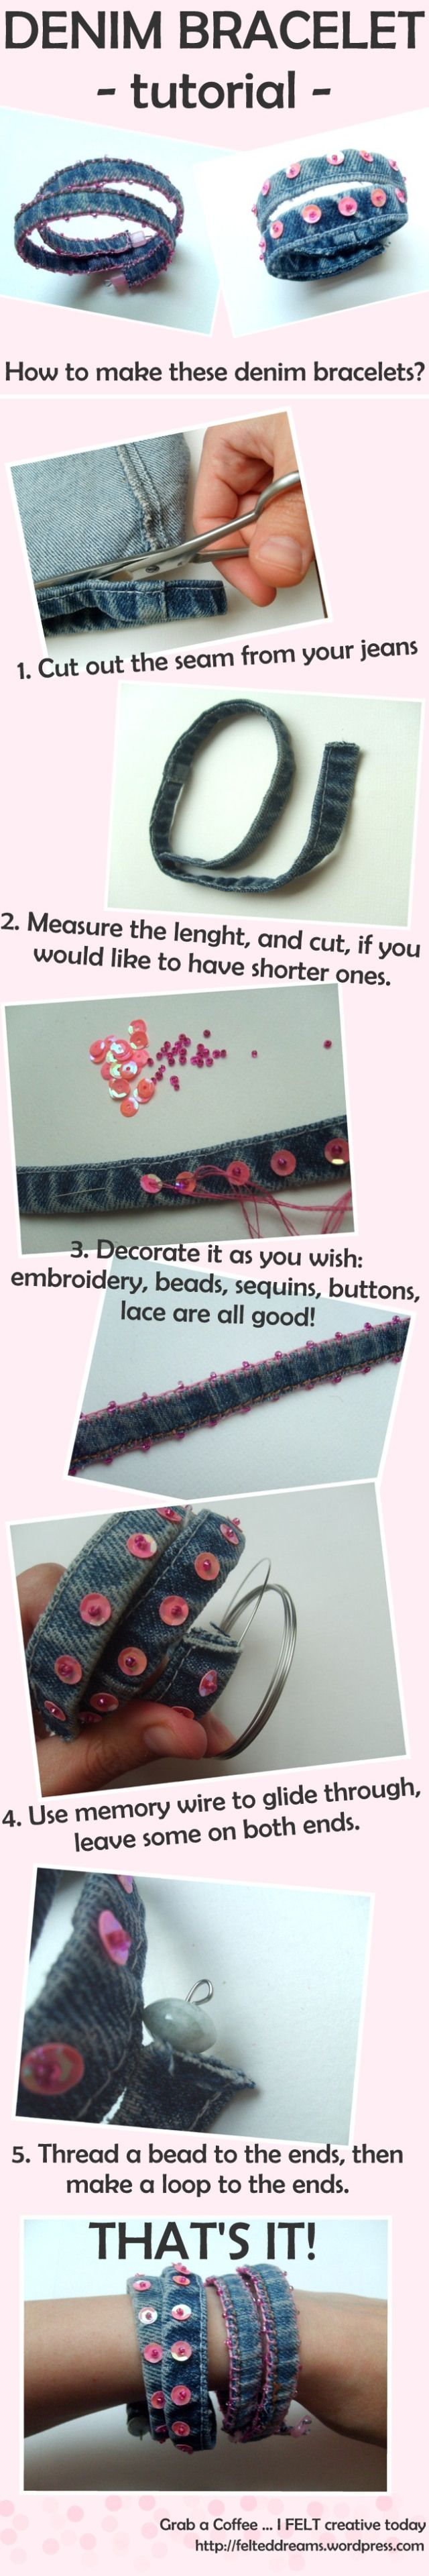 Craft Tutorials, Do It Yourself Crafts, Pictures & Crafting Patterns - Craftster